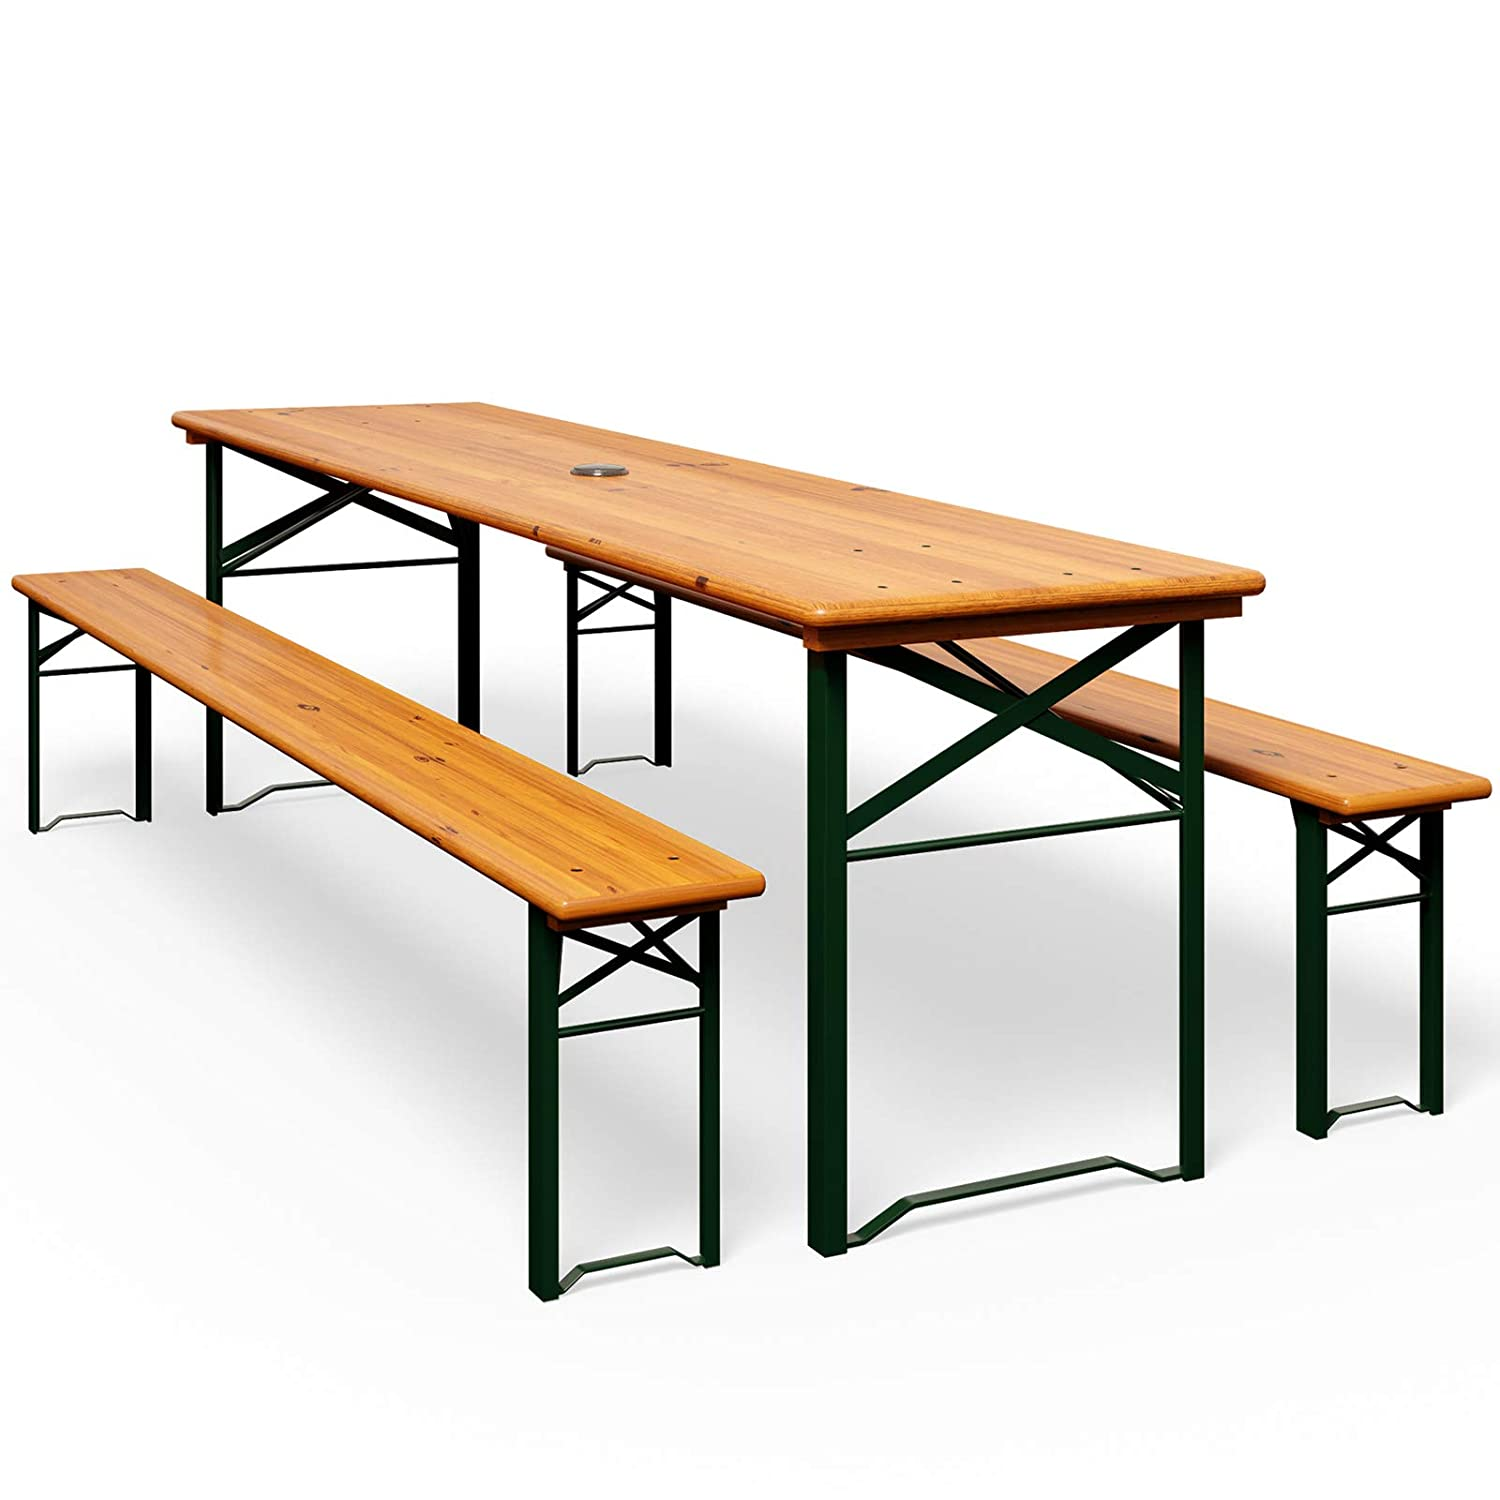 Benches/Stools Antiques VINTAGE GARDEN INDUSTRIAL BEER FESTIVAL PUB CAFE TABLES AND BENCHES GERMAN